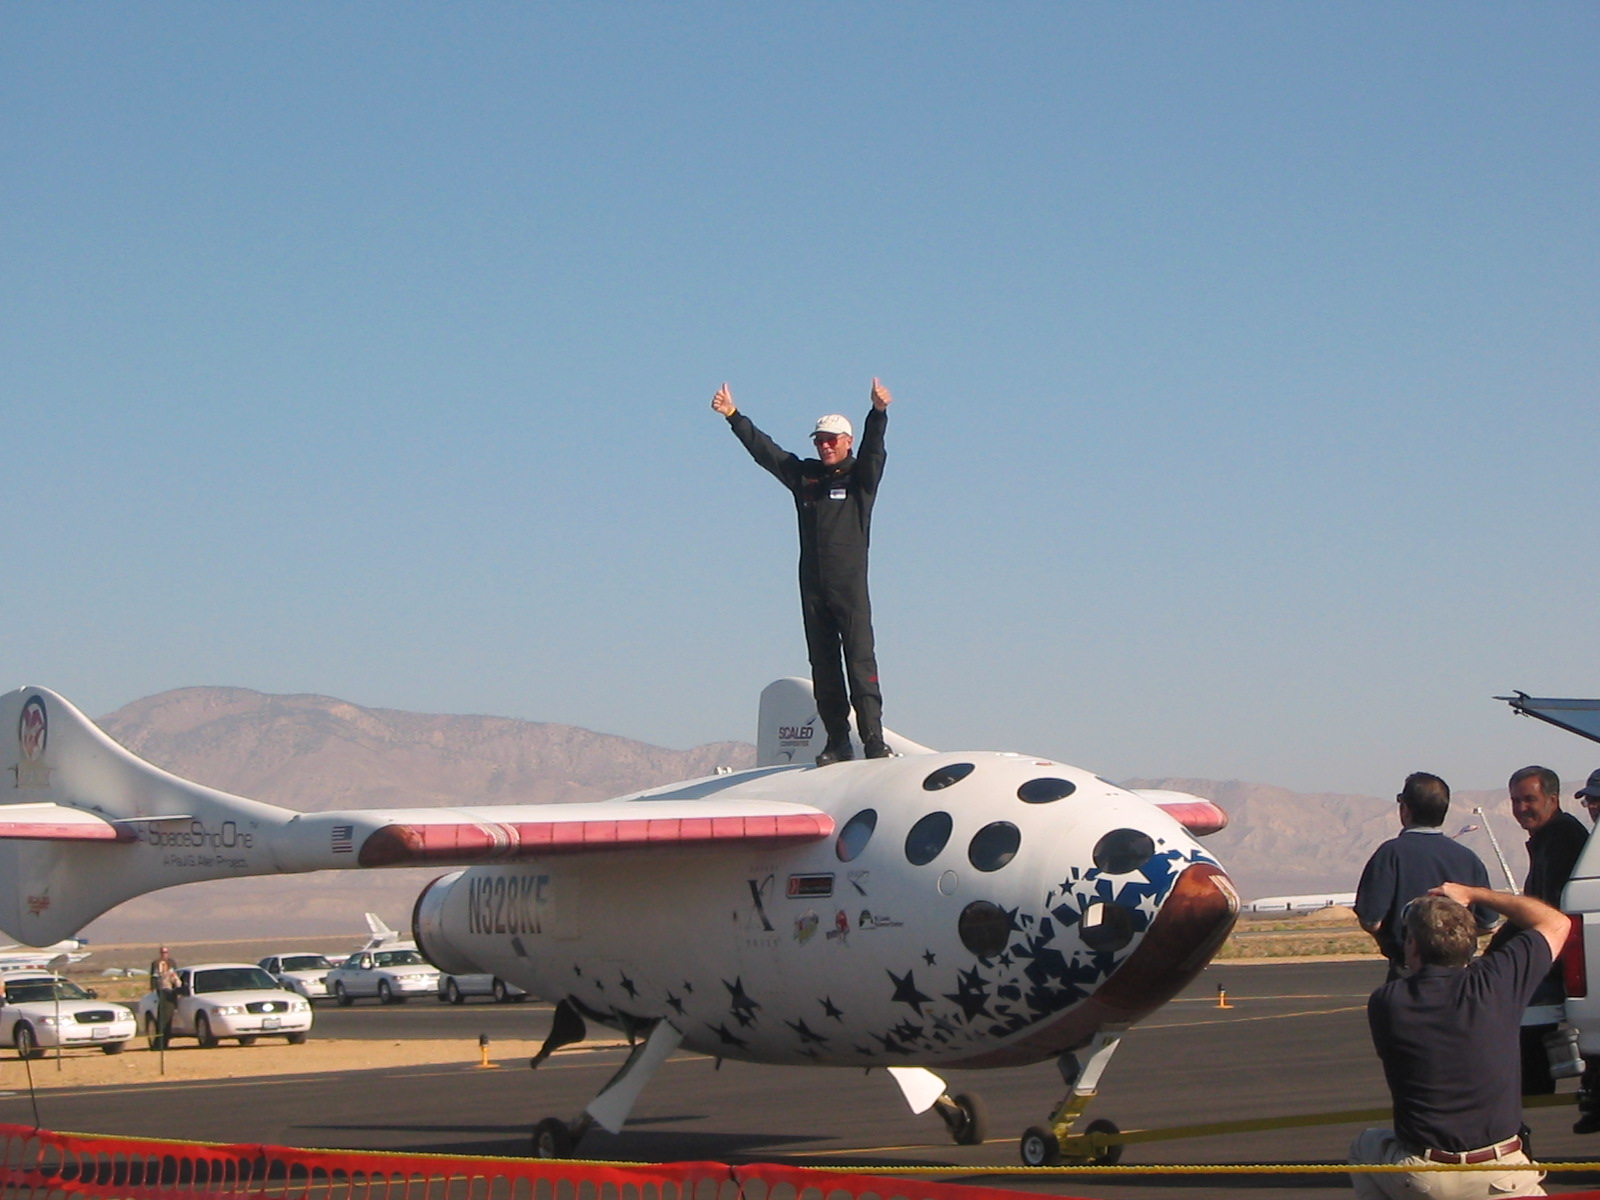 http://upload.wikimedia.org/wikipedia/commons/d/d6/SpaceShipOne_test_pilot_Mike_Melvill_after_the_launch_in_pursuit_of_the_Ansari_X_Prize_on_September_29%2C_2004.jpg